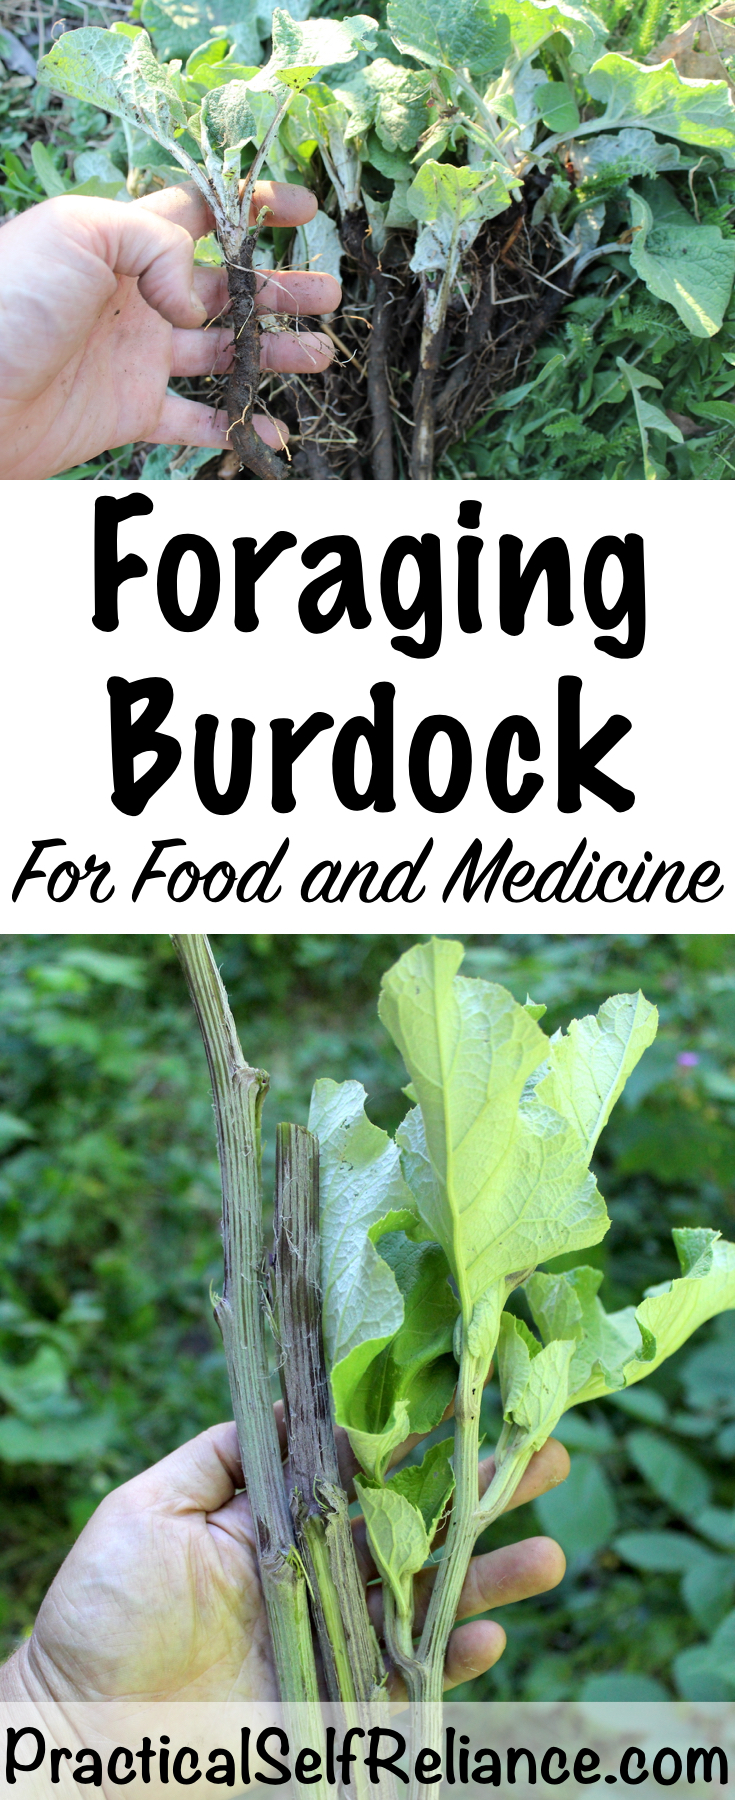 Foraging Burdock for Food and Medicine